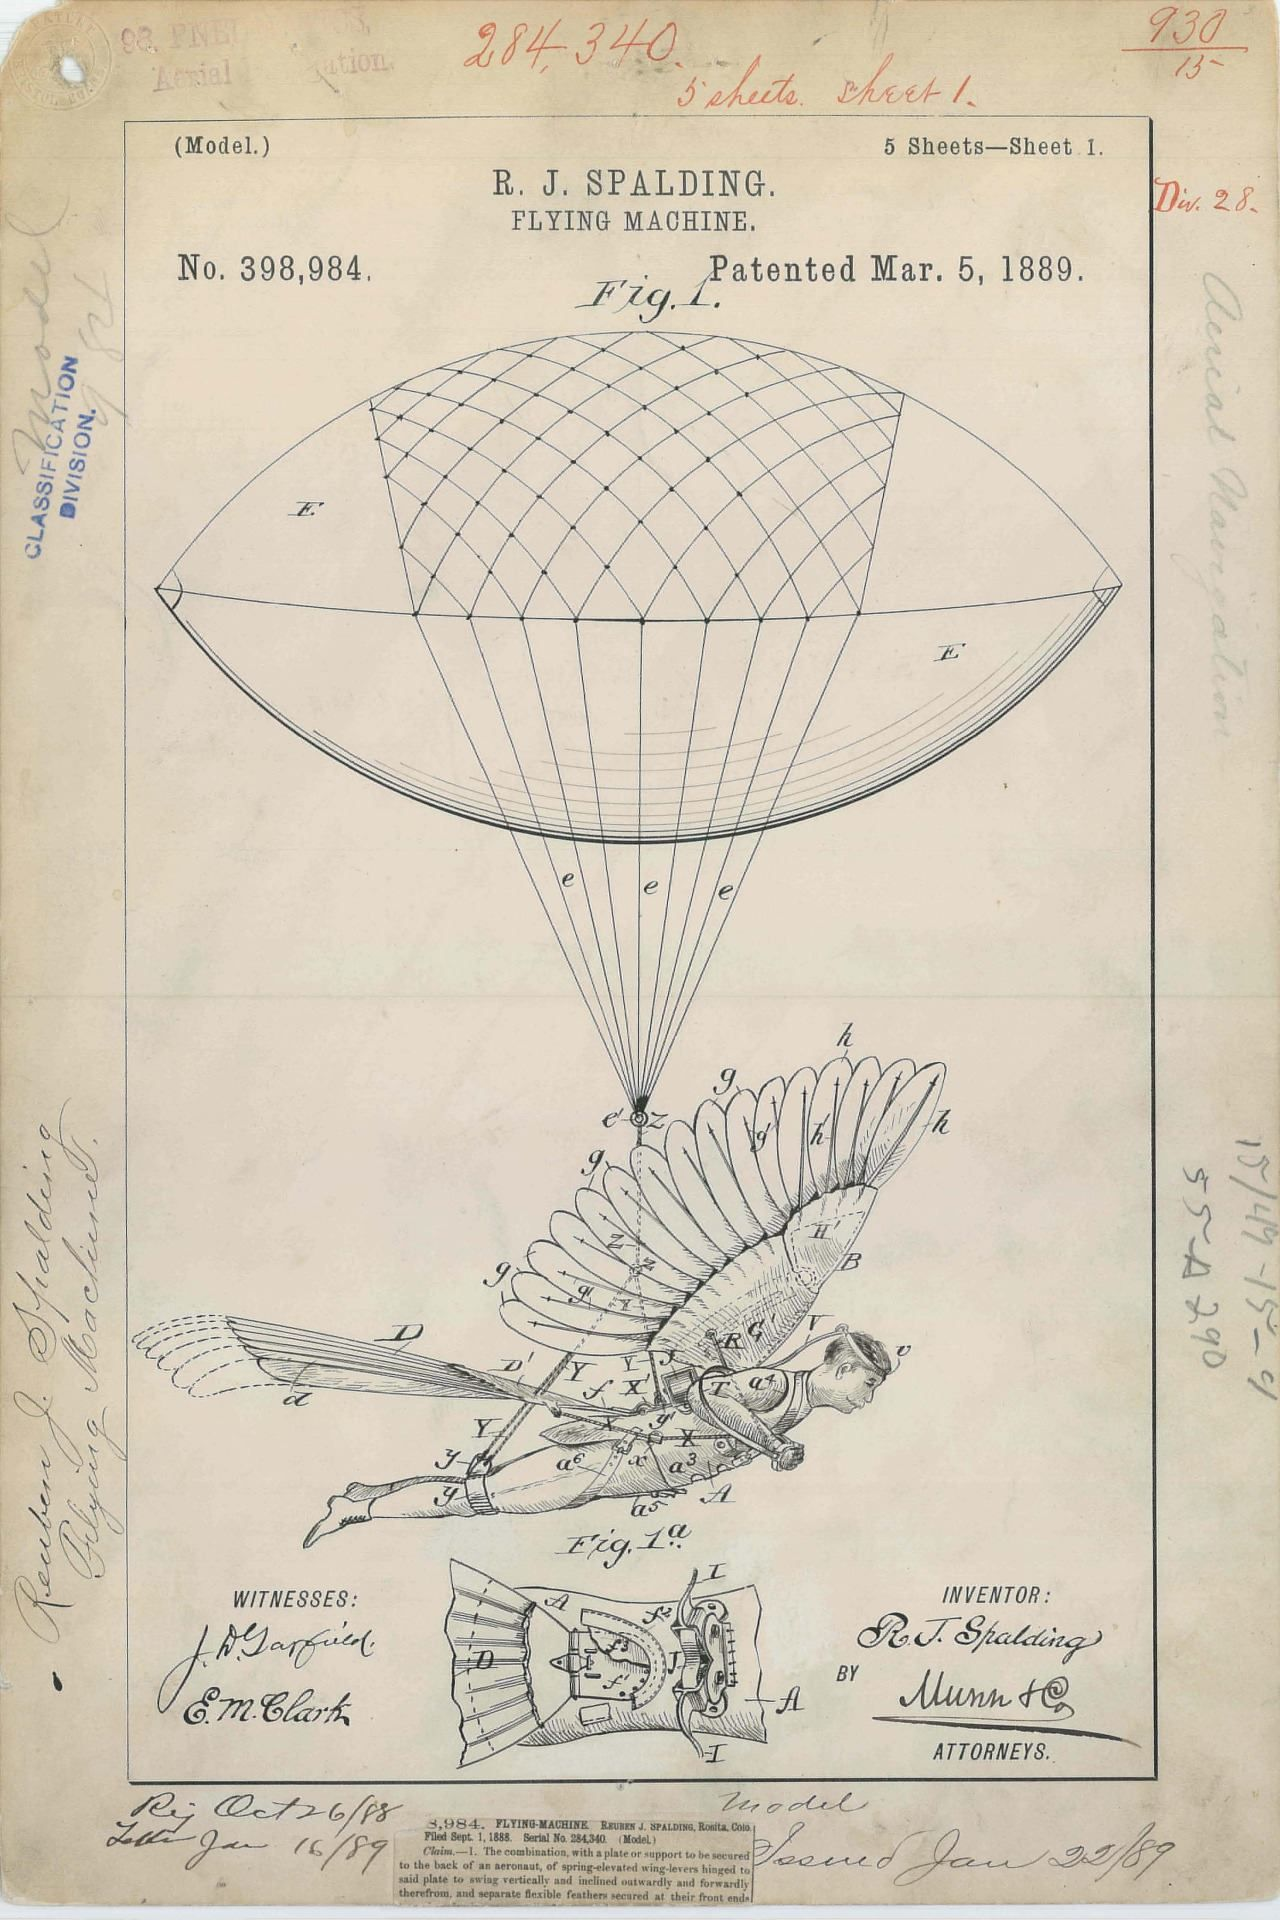 Patent drawing for r j spaldings flying machine 1889 1 2801 920 drawings malvernweather Image collections